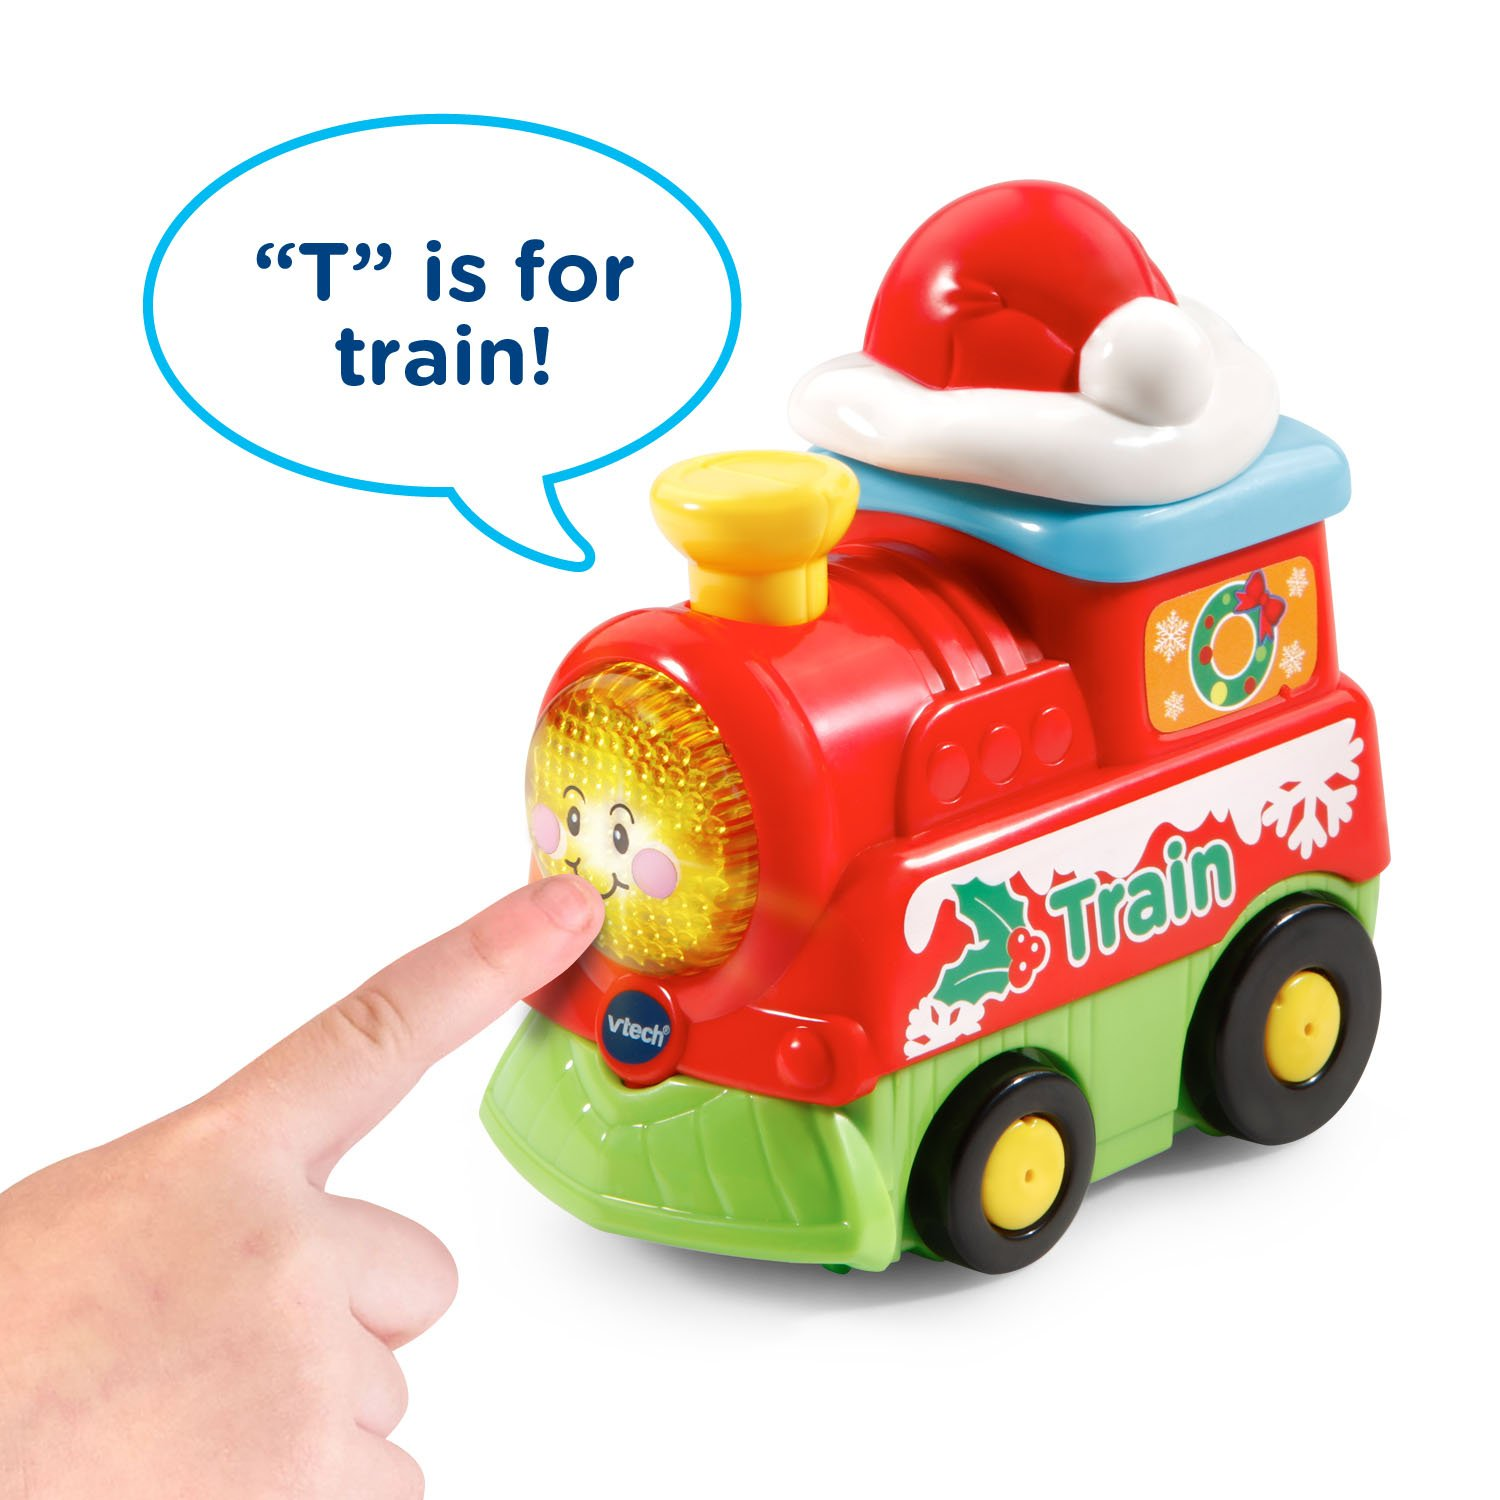 vtech go advent calendar 2